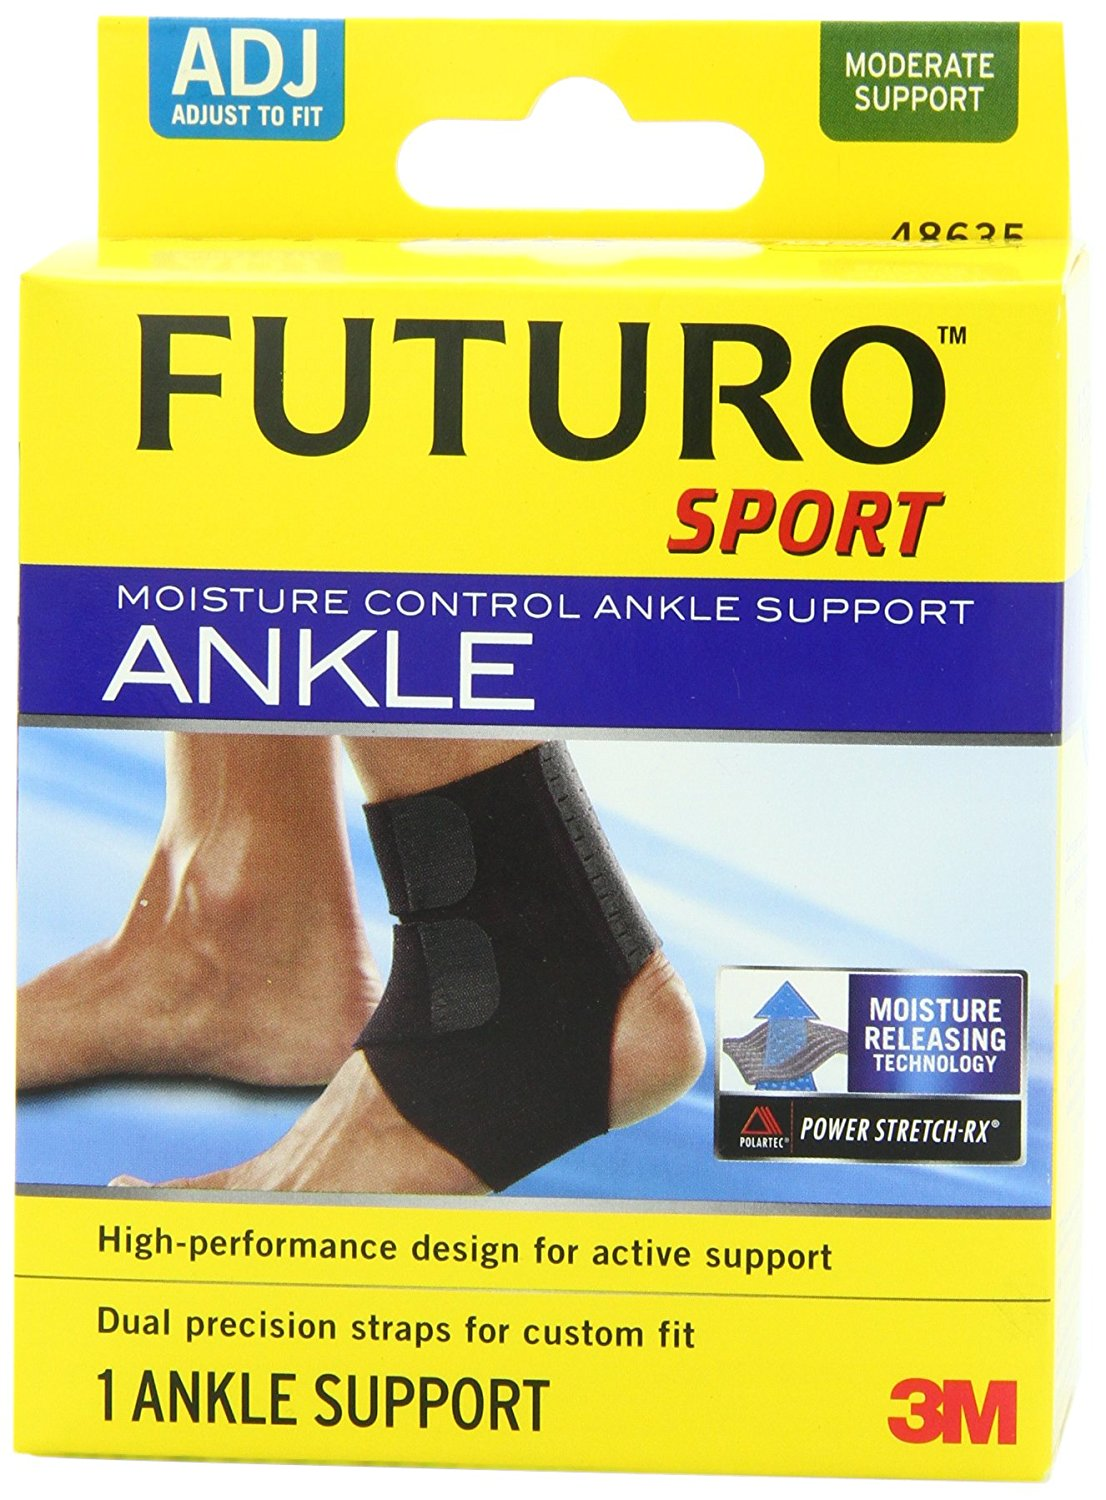 c1f4e99cda Details about Futuro Sport Moisture Control Ankle Support, Adjustable ,  New, Free Shipping